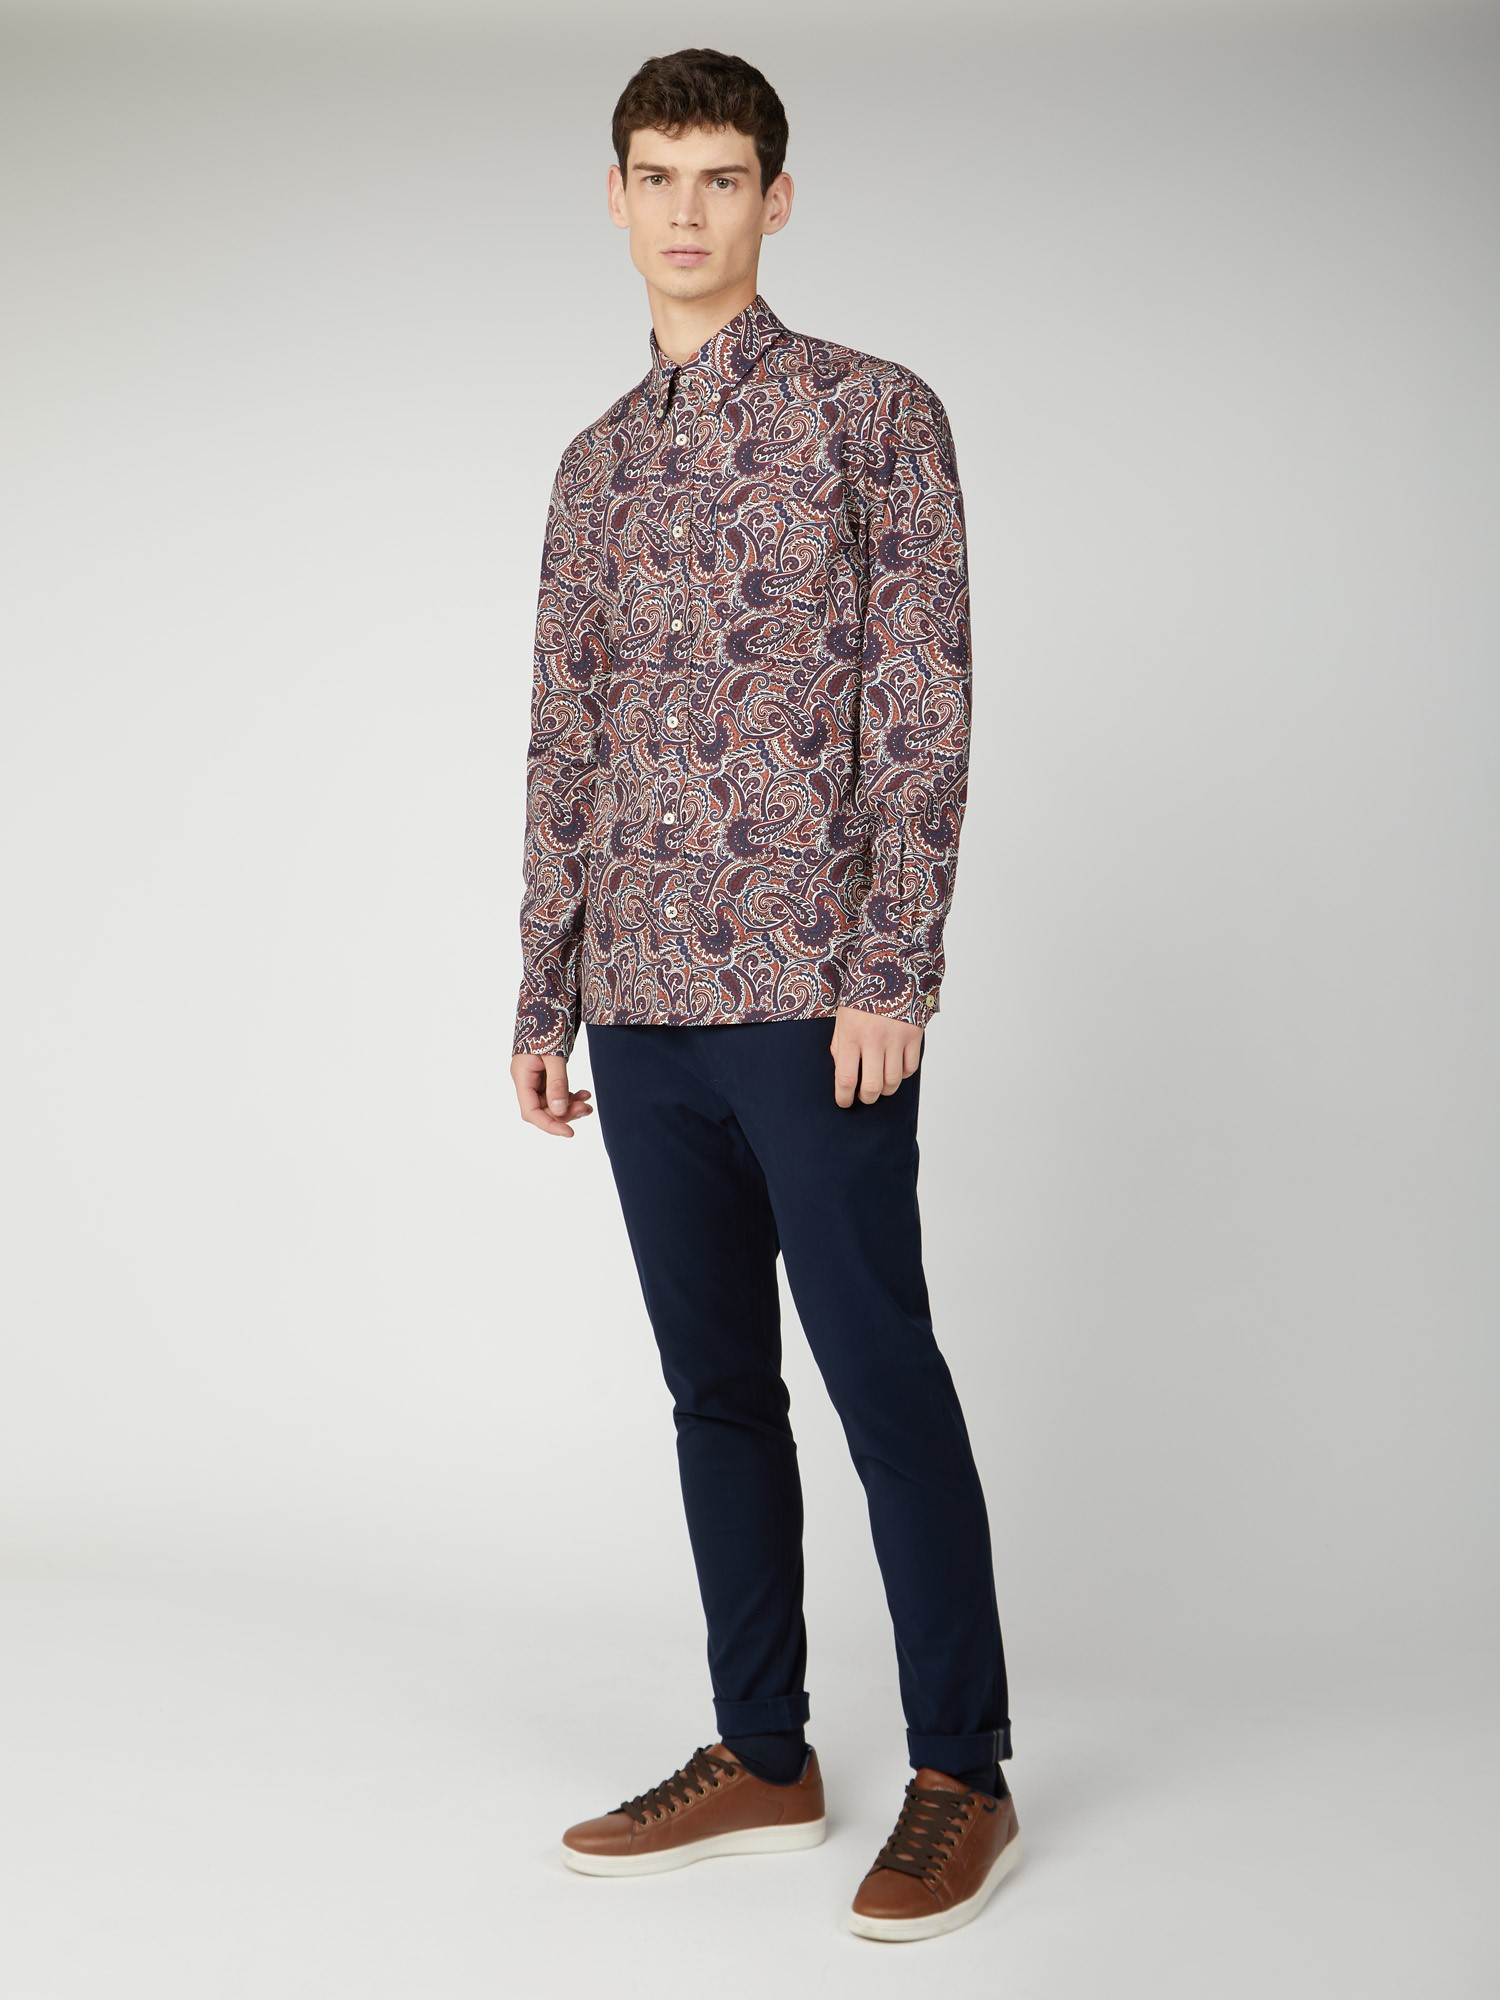 Trouser with Large Paisley Print Shirt